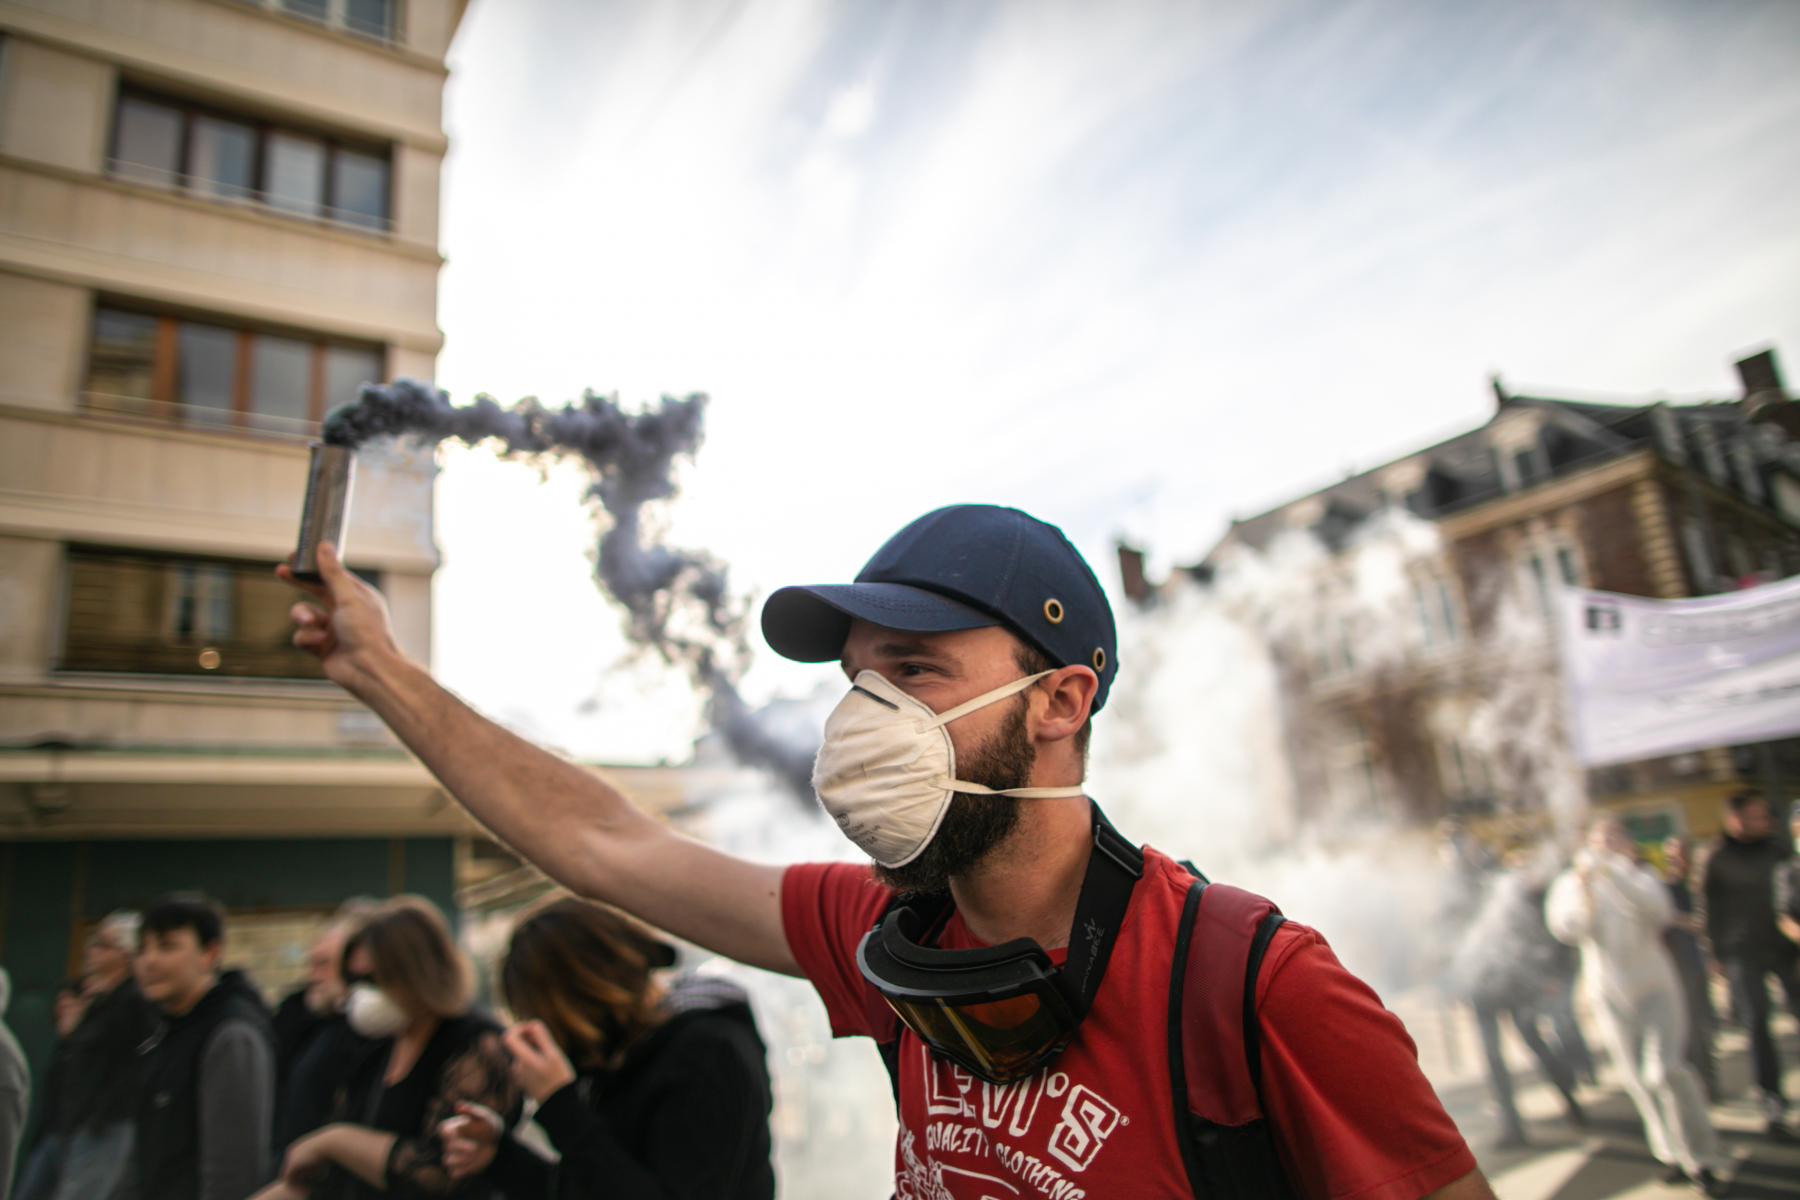 A militant holds a fumigene a demonstration on october 12, 2019, in Rouen, Normandy, to protest after the fire at the Lubrizol factory which occures on september 26, 2019.